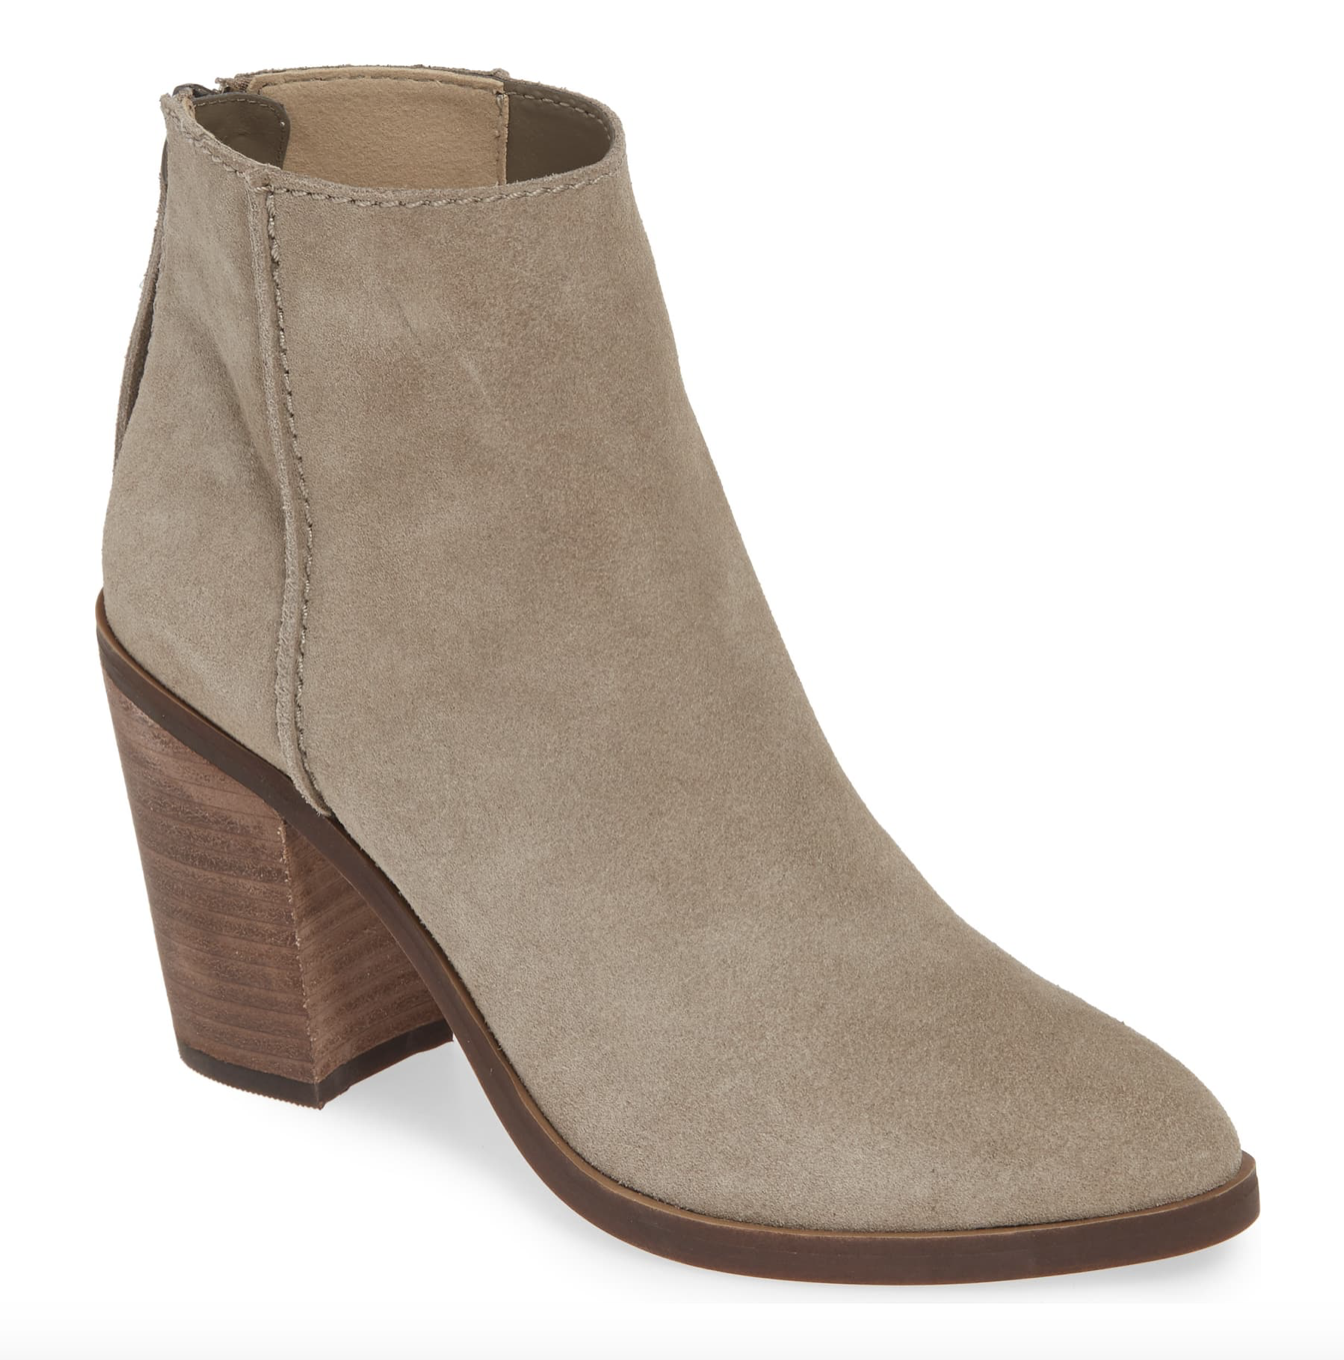 Tan Suede Booties | Nordstrom Anniversary Sale 2019 | A Demure Life Fashion Blog